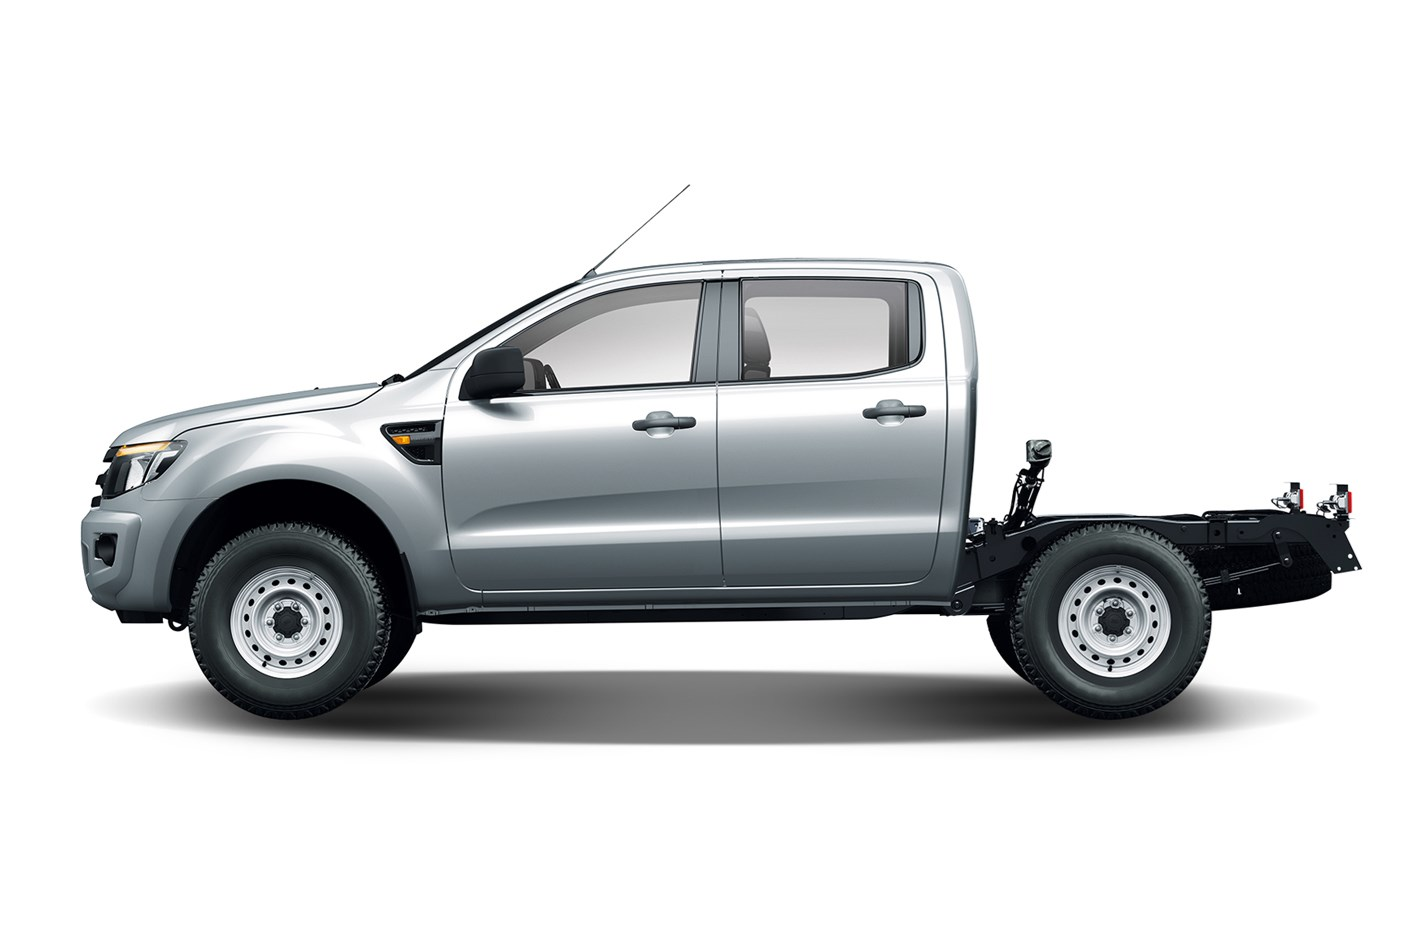 2017 Ford Ranger XL 32 4x4 32L 5cyl Diesel Turbocharged Automatic Cab Chassis